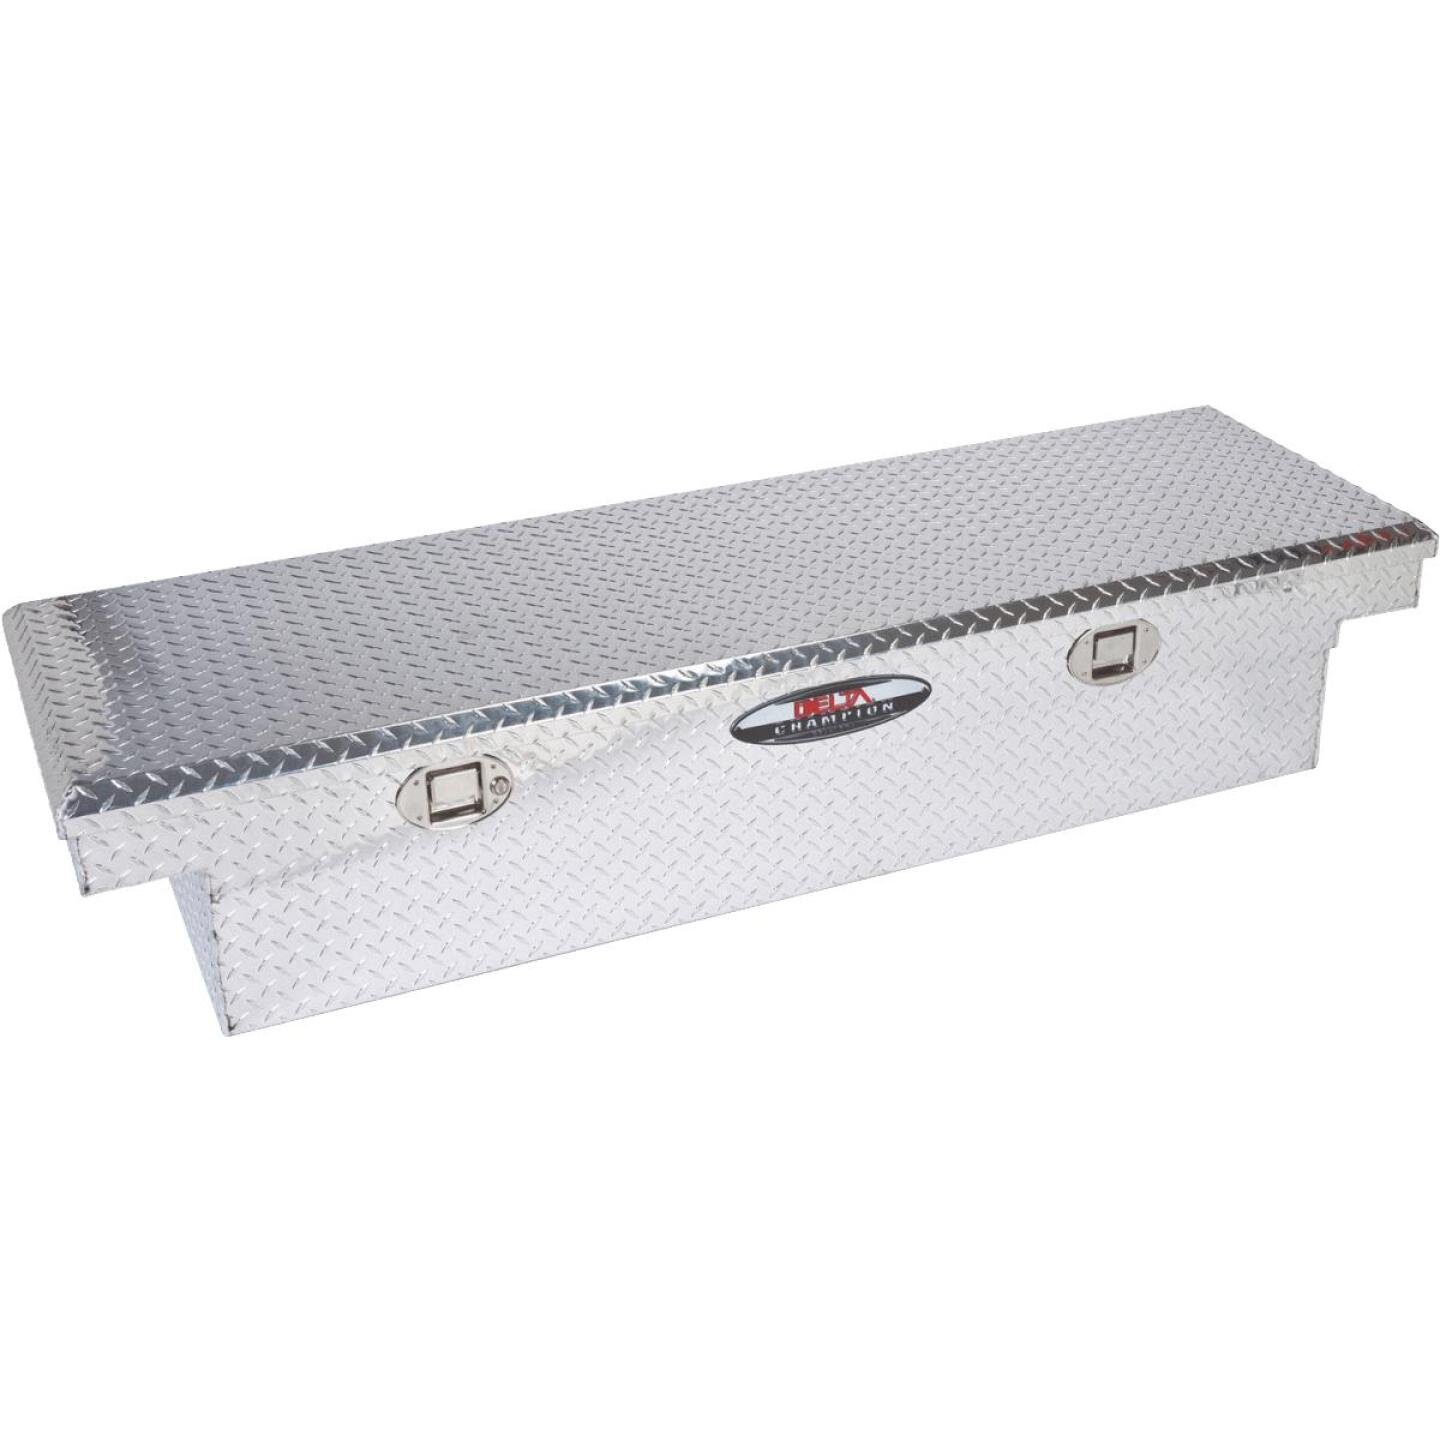 Delta Champion Full Size Single Aluminum Single Self Rising Truck Box Image 1